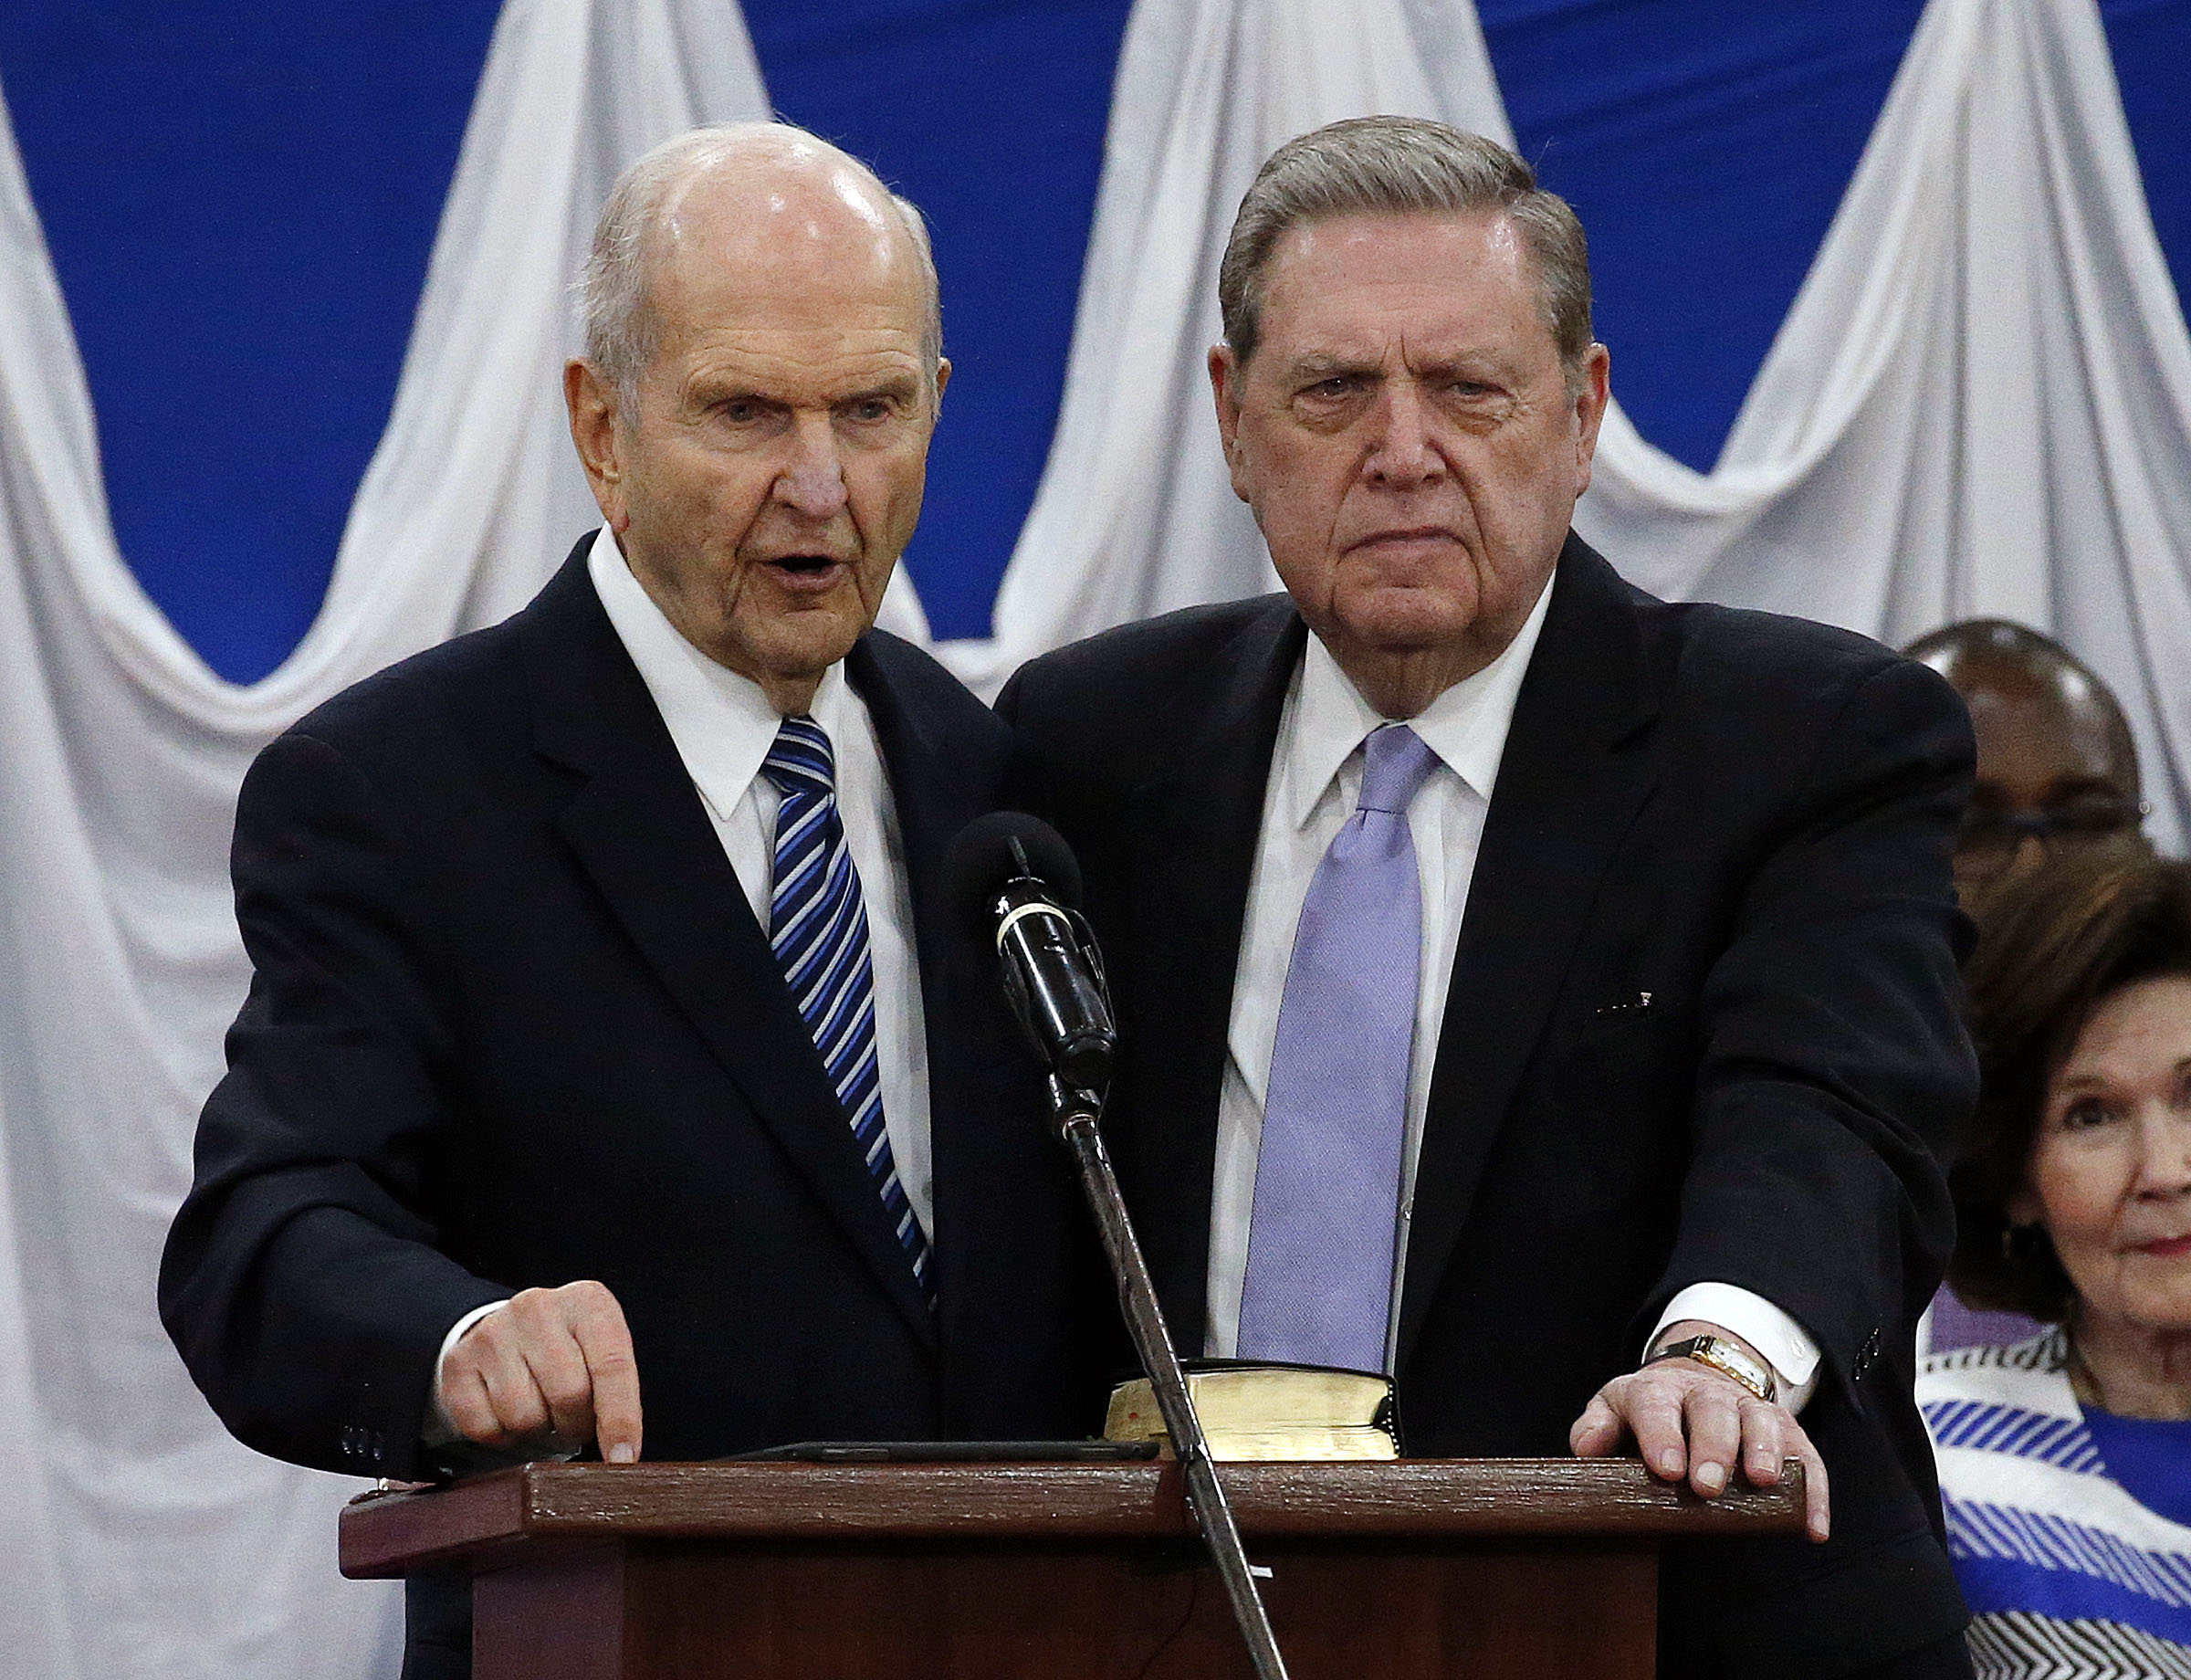 President Russell M. Nelson and Elder Jeffrey R. Holland of The Church of Jesus Christ of Latter-day Saints stand together as President Nelson gives a blessing during a special devotional in Nairobi, Kenya on Monday, April 16, 2018.